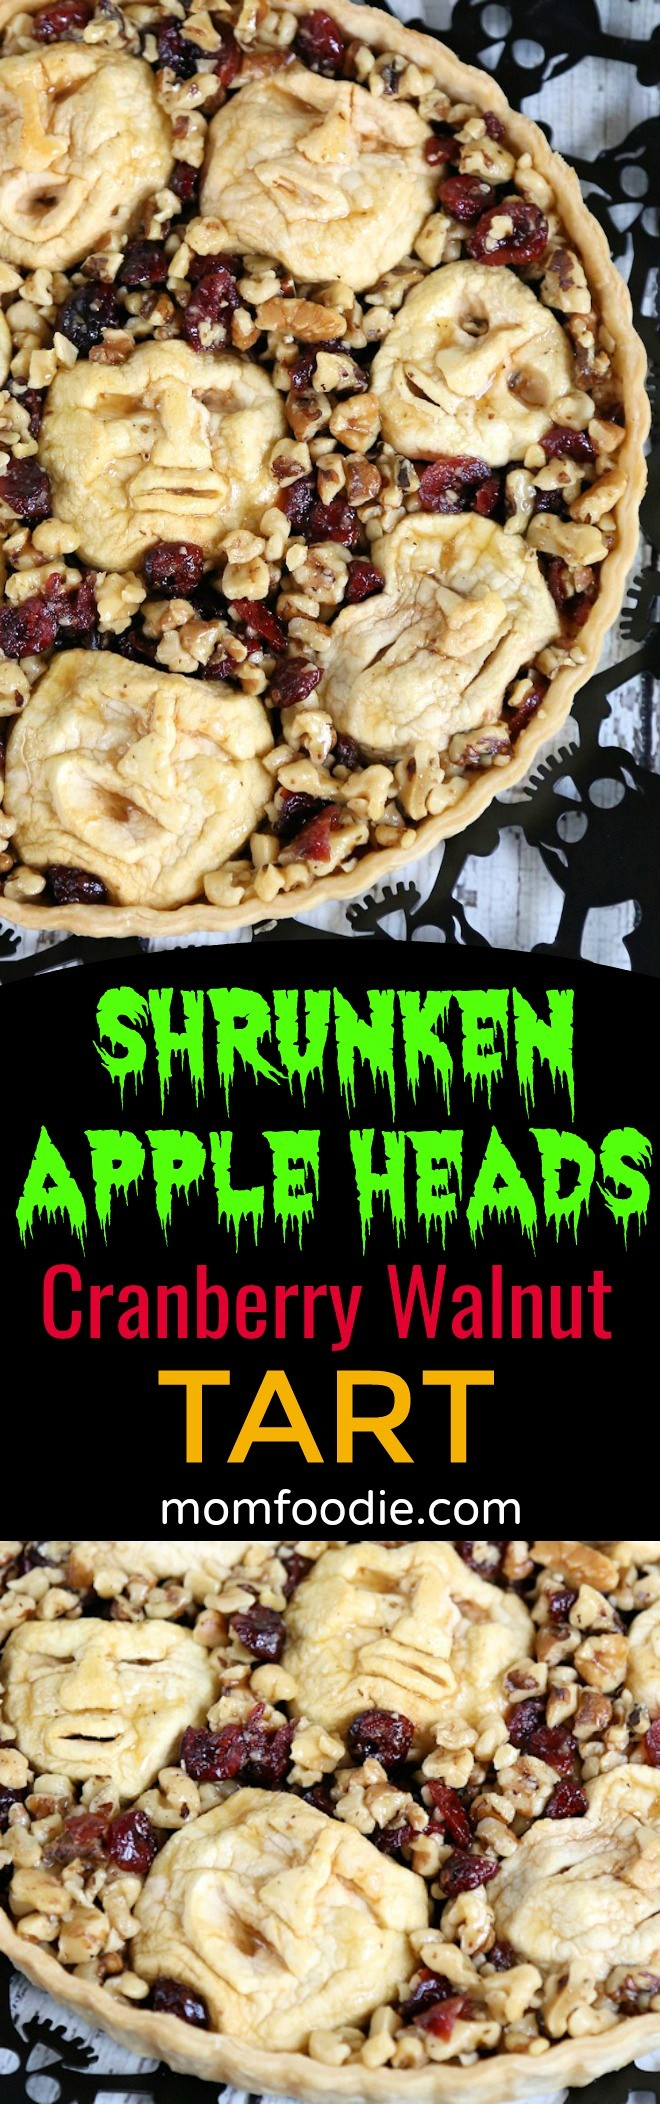 Shrunken Heads Halloween Apple Cranberry Walnut Tart Recipe - Great Dessrt for an Adult Halloween Party or Dinner.